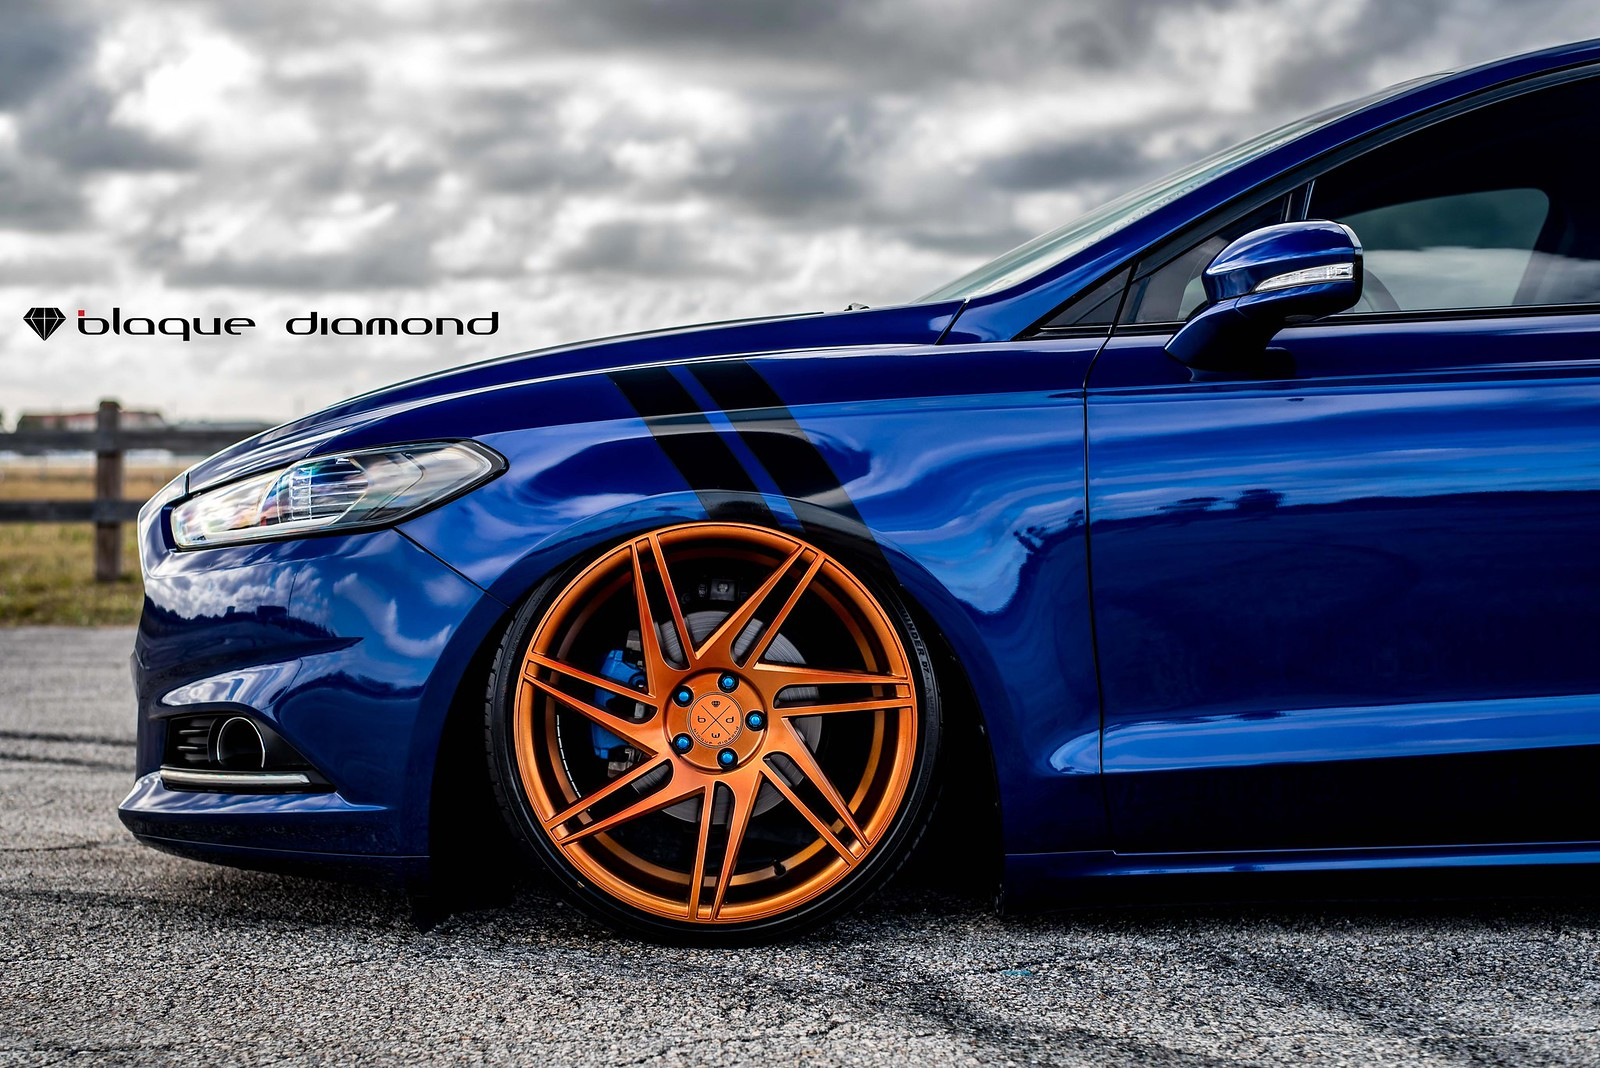 2014_Ford_Fusion_blue_BD1_Trans_Copper_20_Inch-2